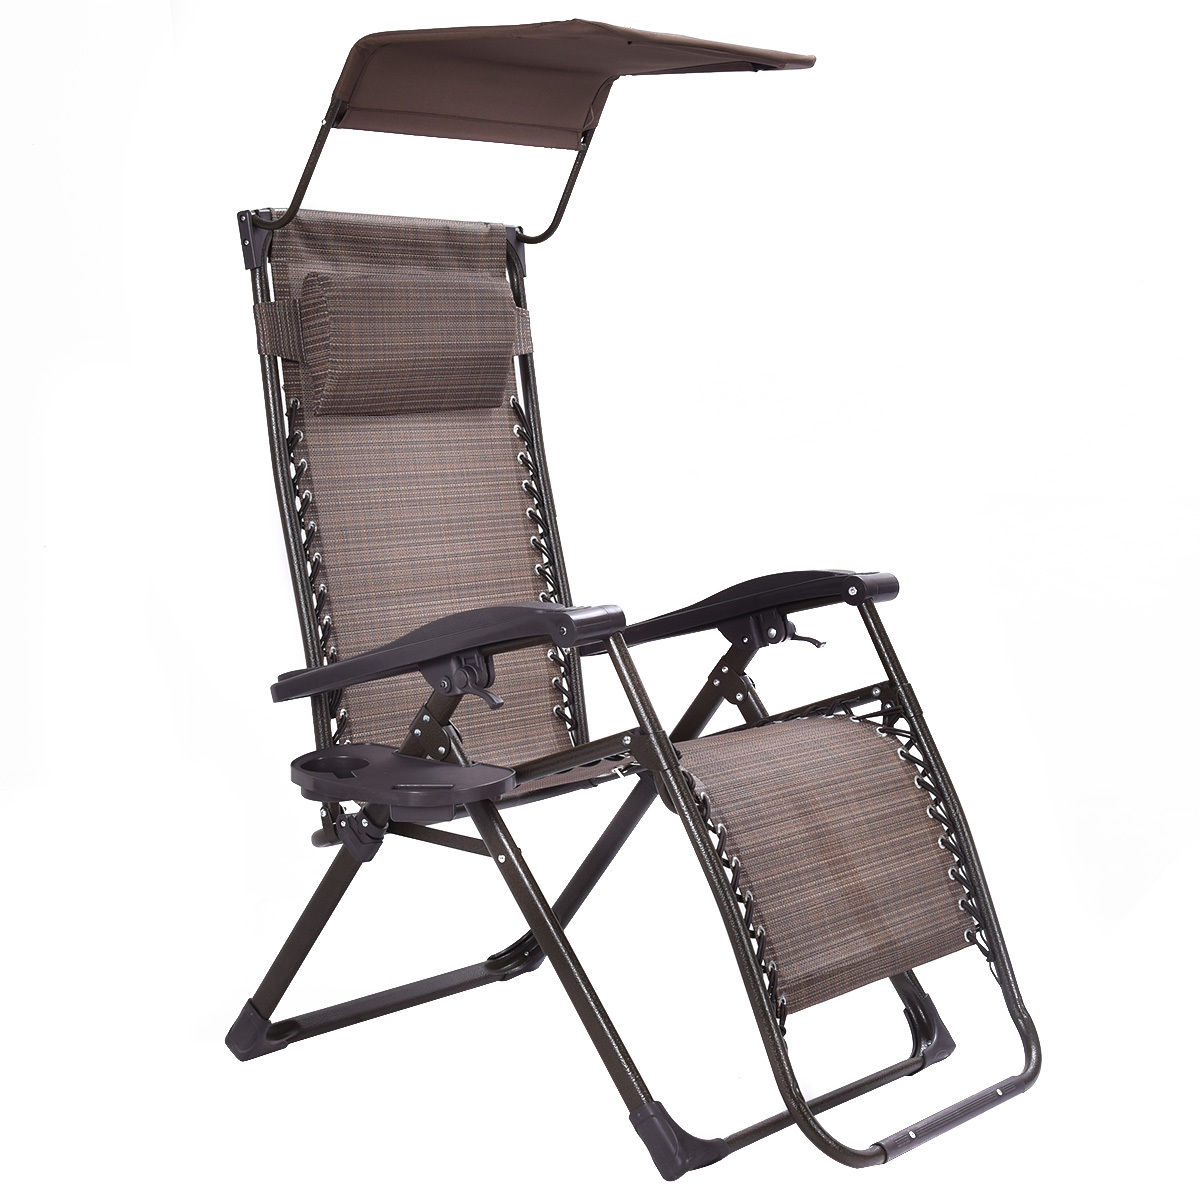 Zero Gravity Outdoor Lounge Chair Us 68 99 Giantex Foldable Zero Gravity Chair Lounge Patio Garden Outdoor Yard Recliner With Sunshade Tray Beach Chairs Op3007 In Sun Loungers From